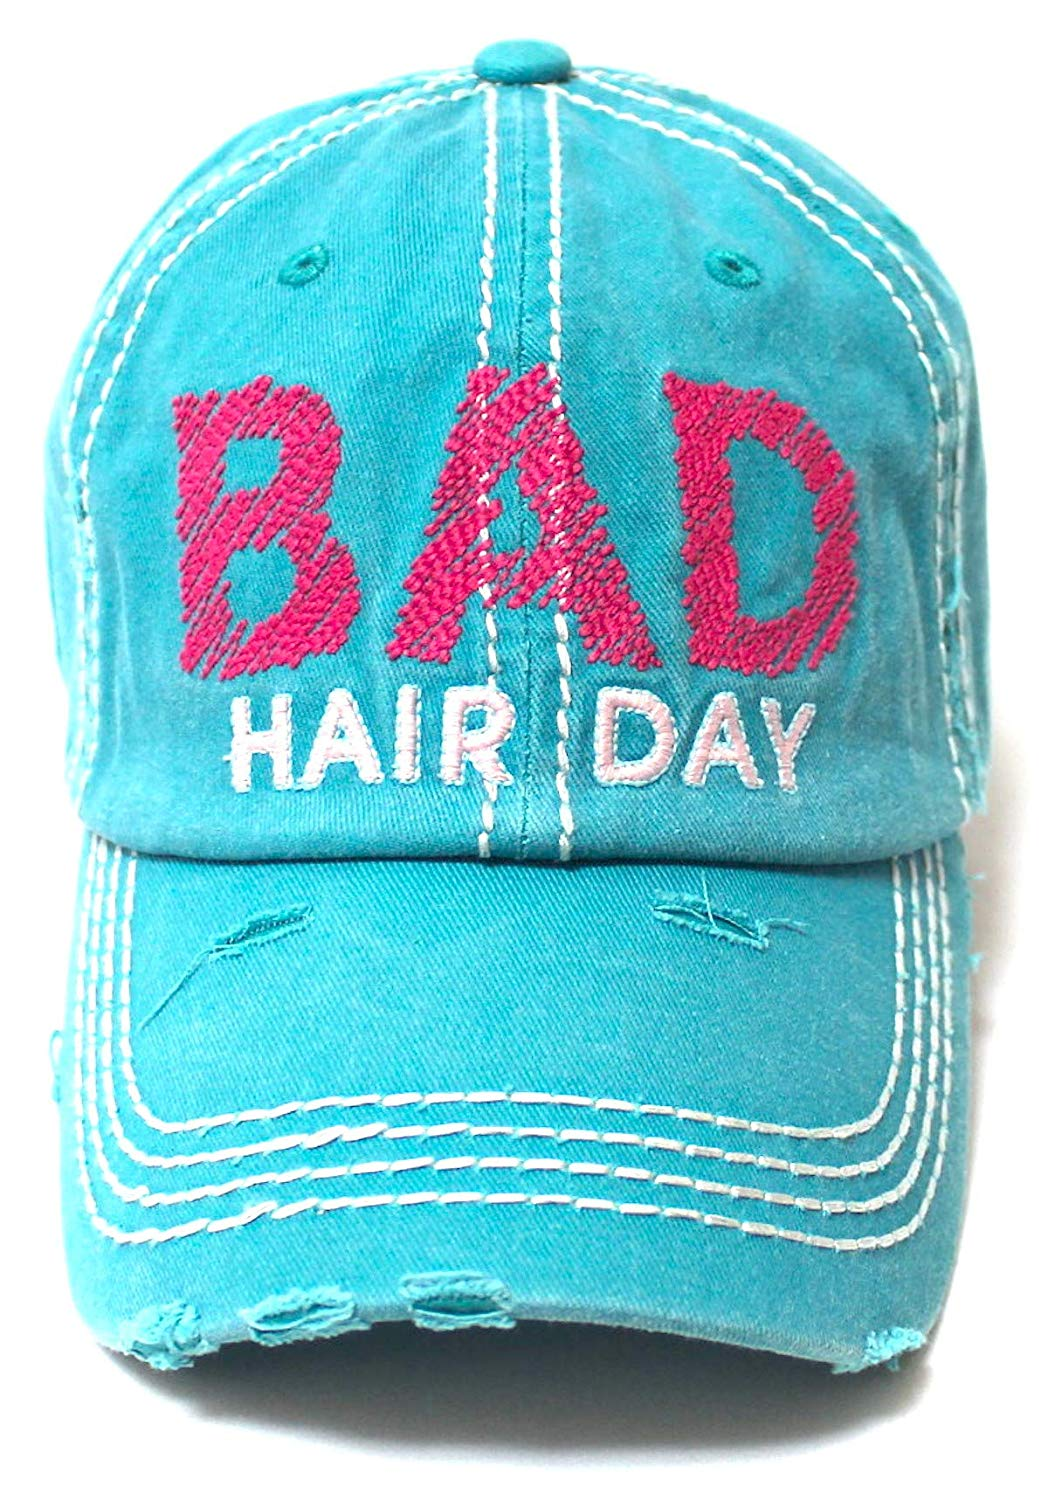 Bad Hair Day Stitch Embroidery Distressed Baseball Hat, Turquoise Blue - Caps 'N Vintage